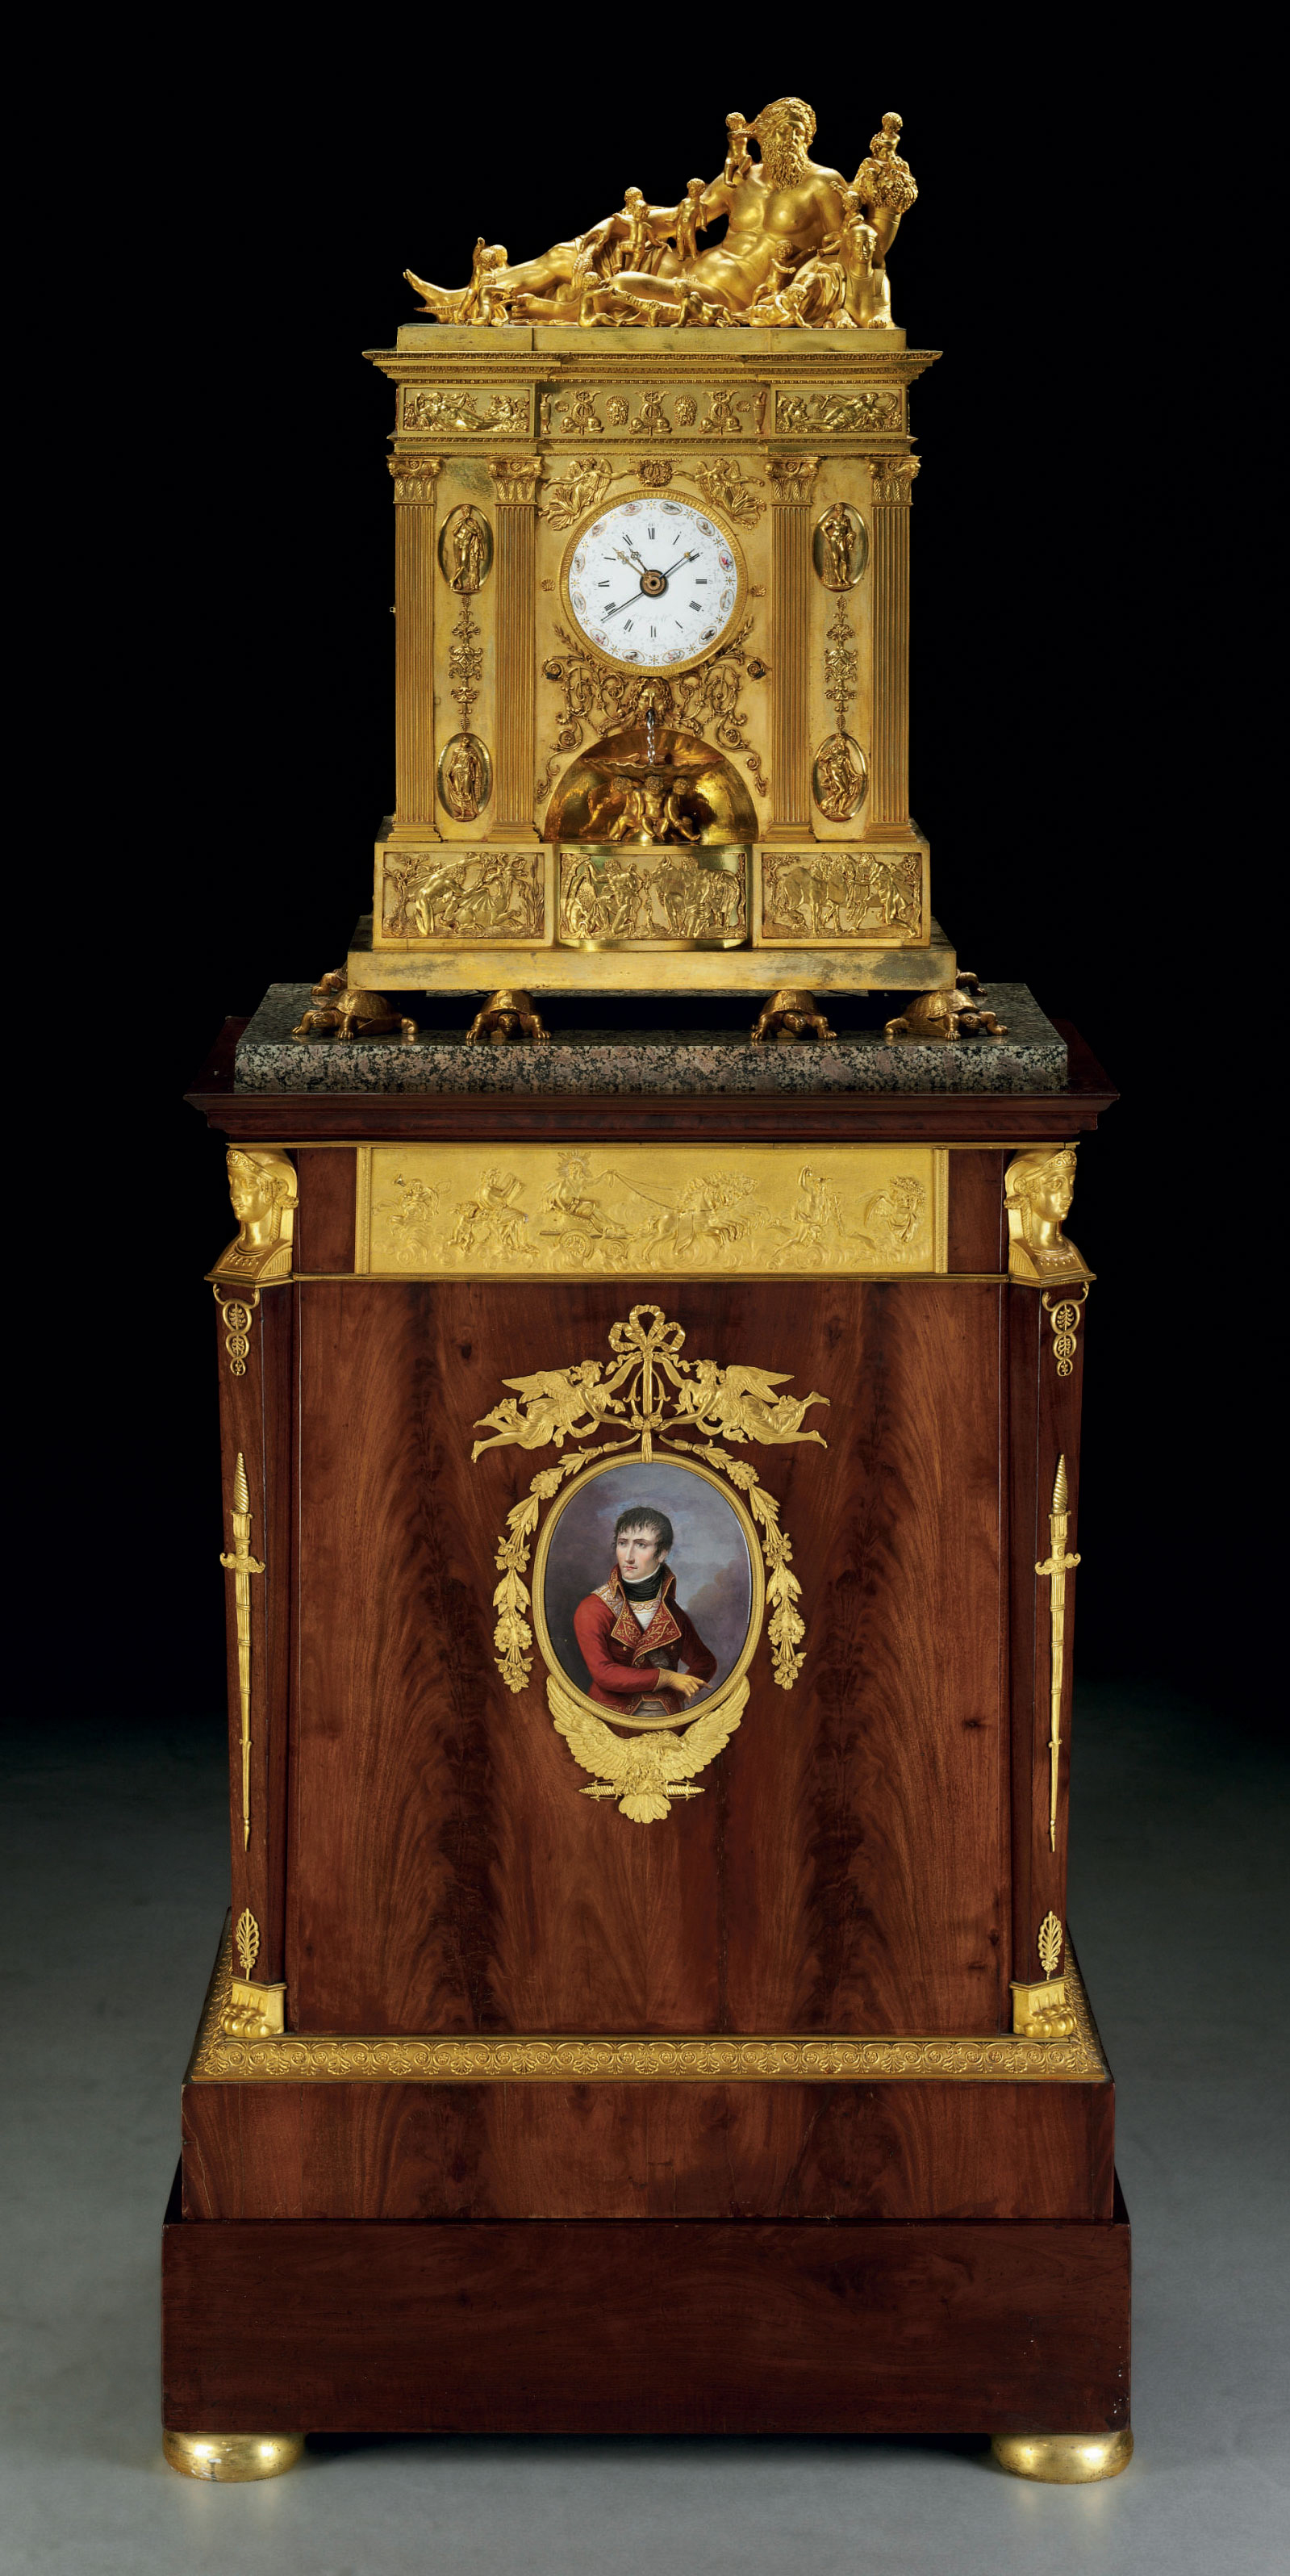 A CONSULAT LARGE ORMOLU QUARTER-STRIKING AND AUTOMATON PEDESTAL CLOCK WITH ANNUAL CALENDAR AND EQUATION OF TIME, ON AN ORMOLU AND PORCELAIN-MOUNTED MAHOGANY PEDESTAL INCORPORATING AN ORGAN